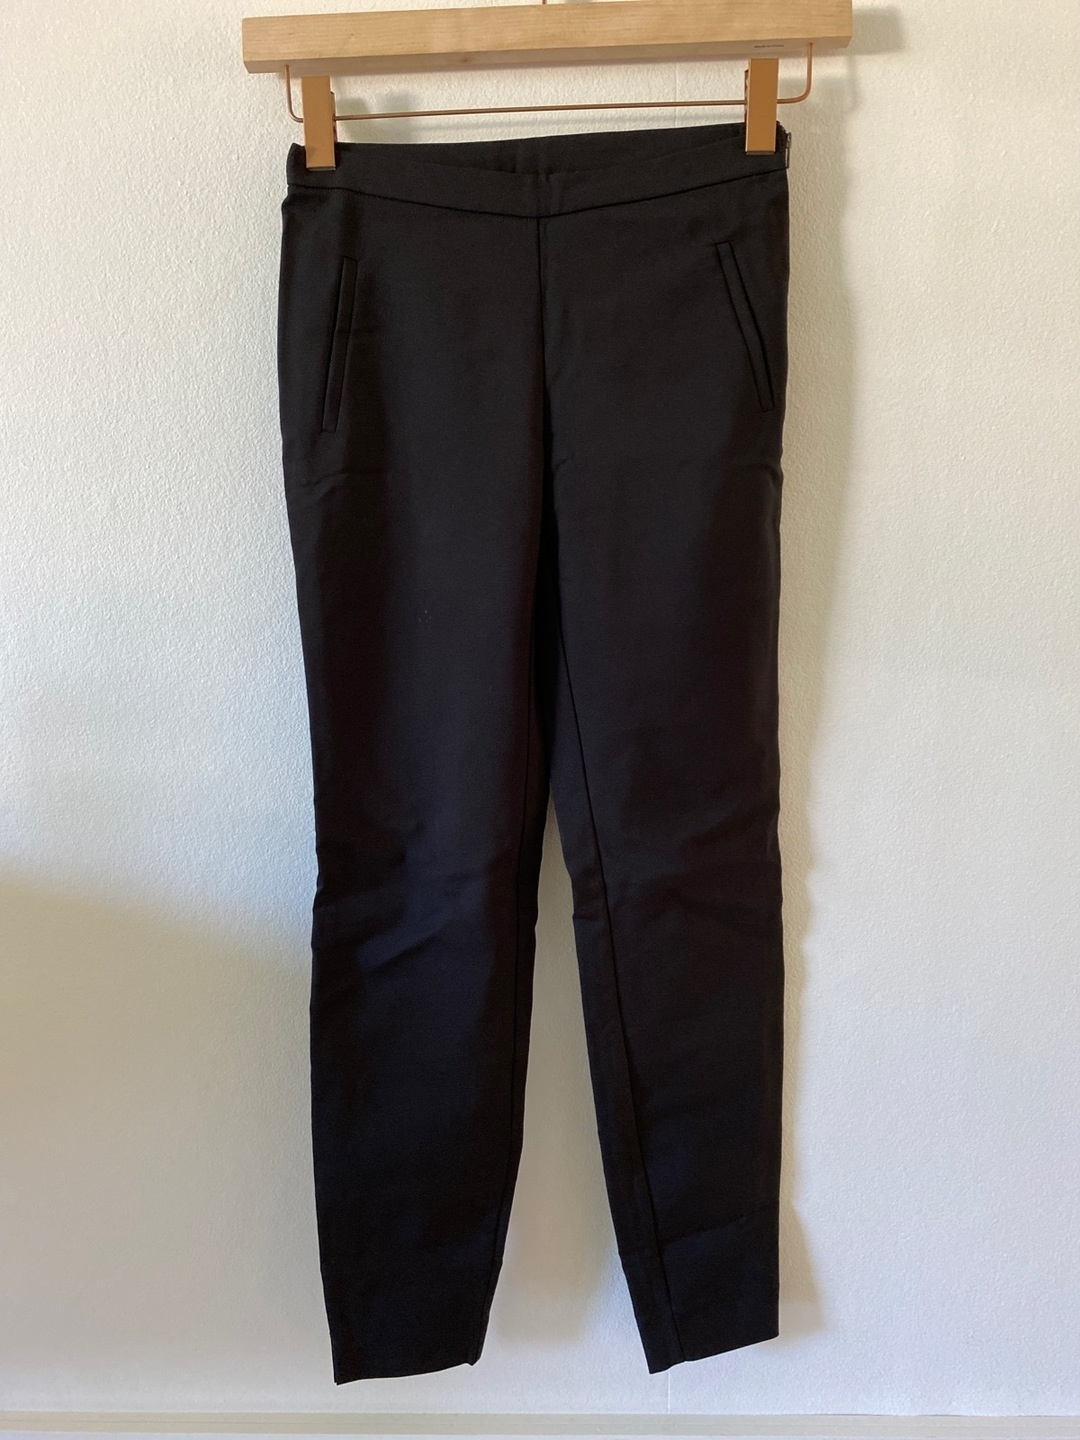 Women's trousers & jeans - Y.A.S photo 1